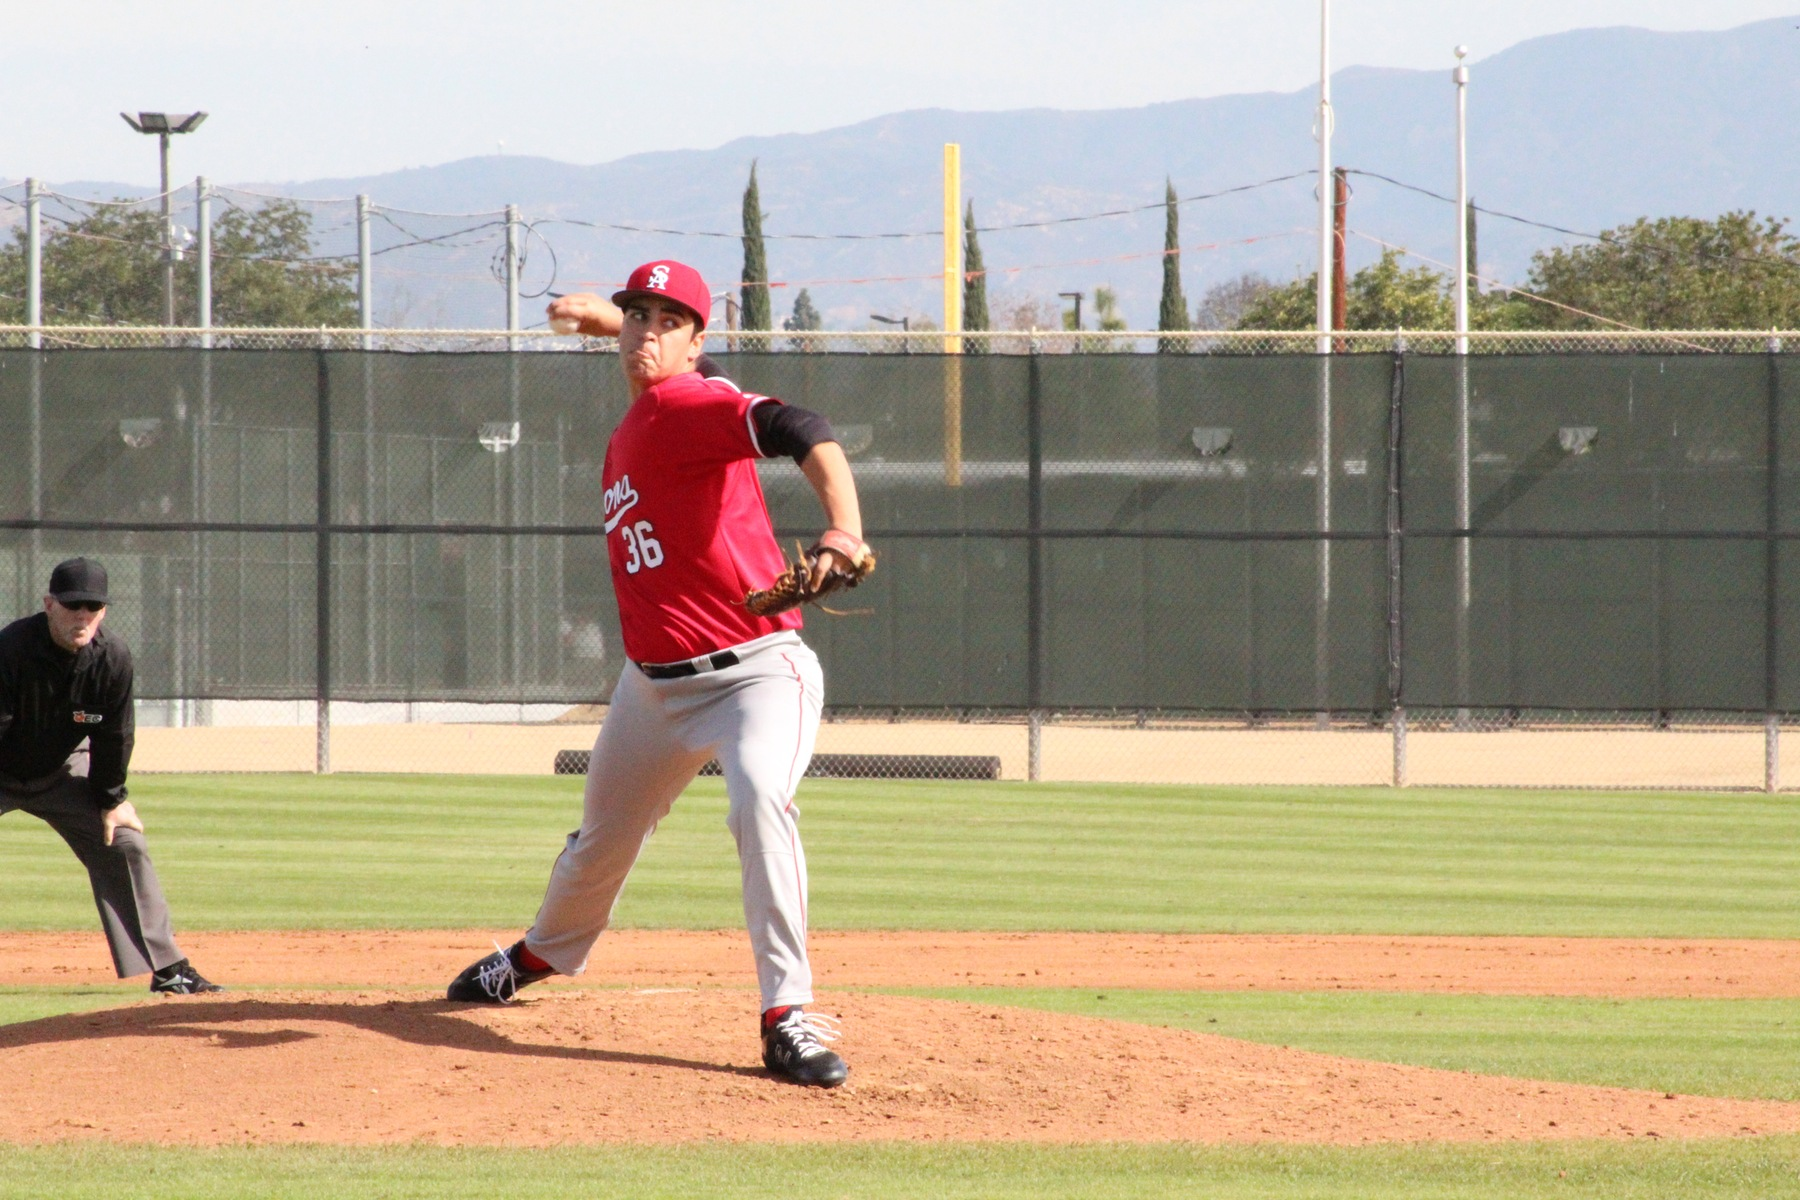 Santa Ana Throws No-Hitter in Season Opener